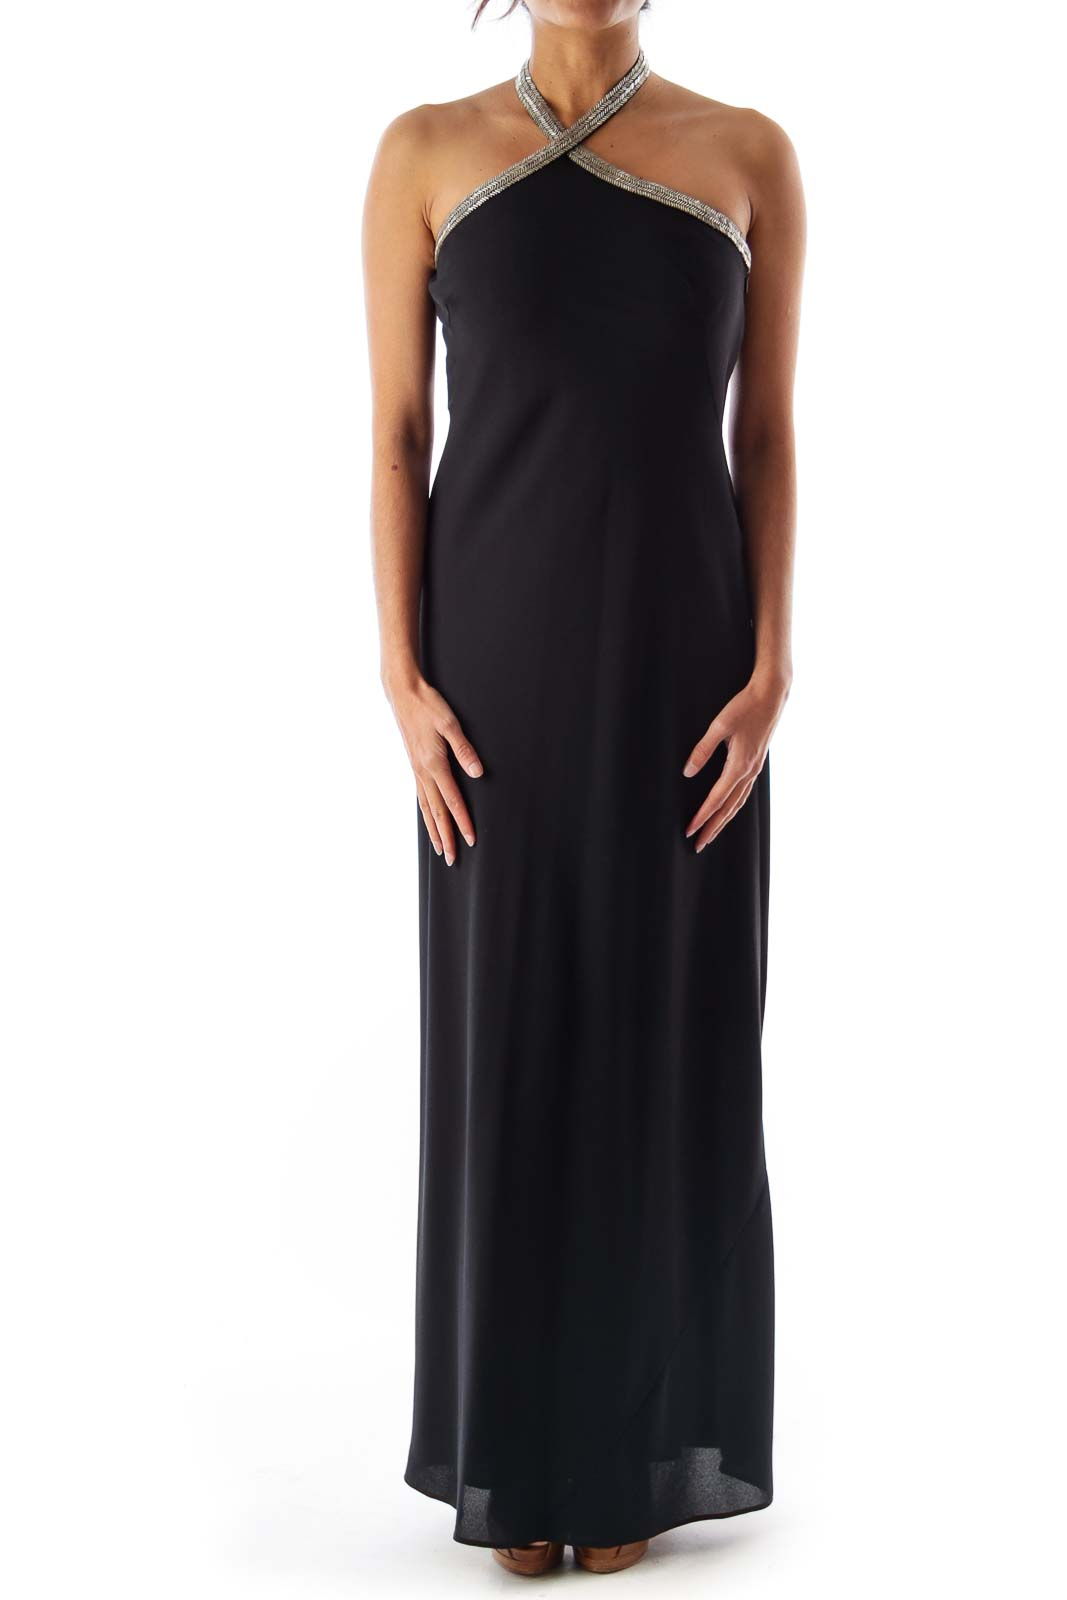 Black Halter Embelished Dress Front